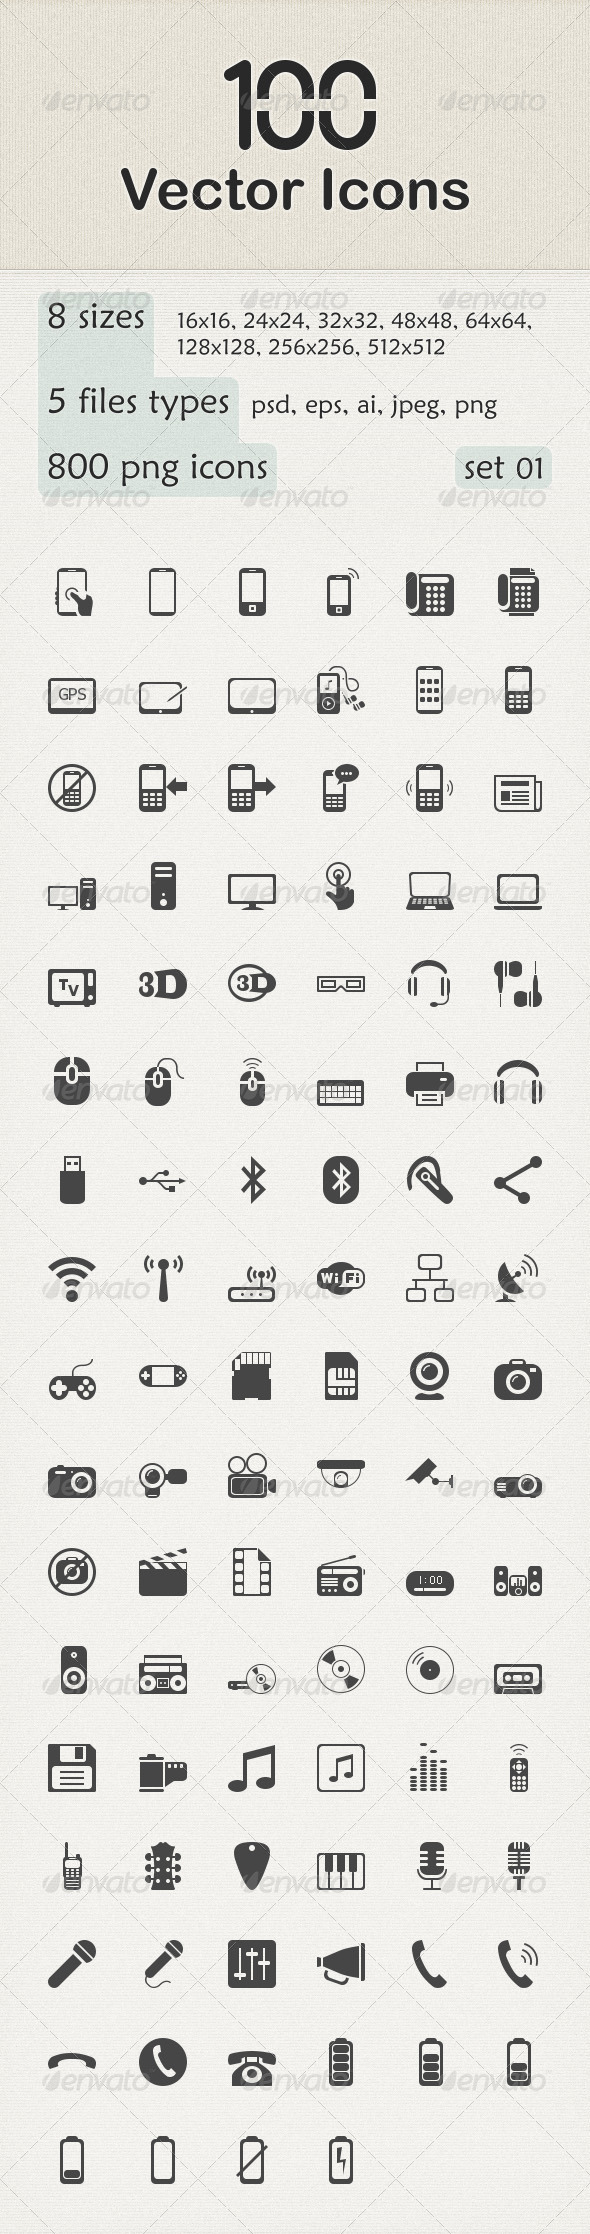 GraphicRiver 100 Vector Icons 6149150